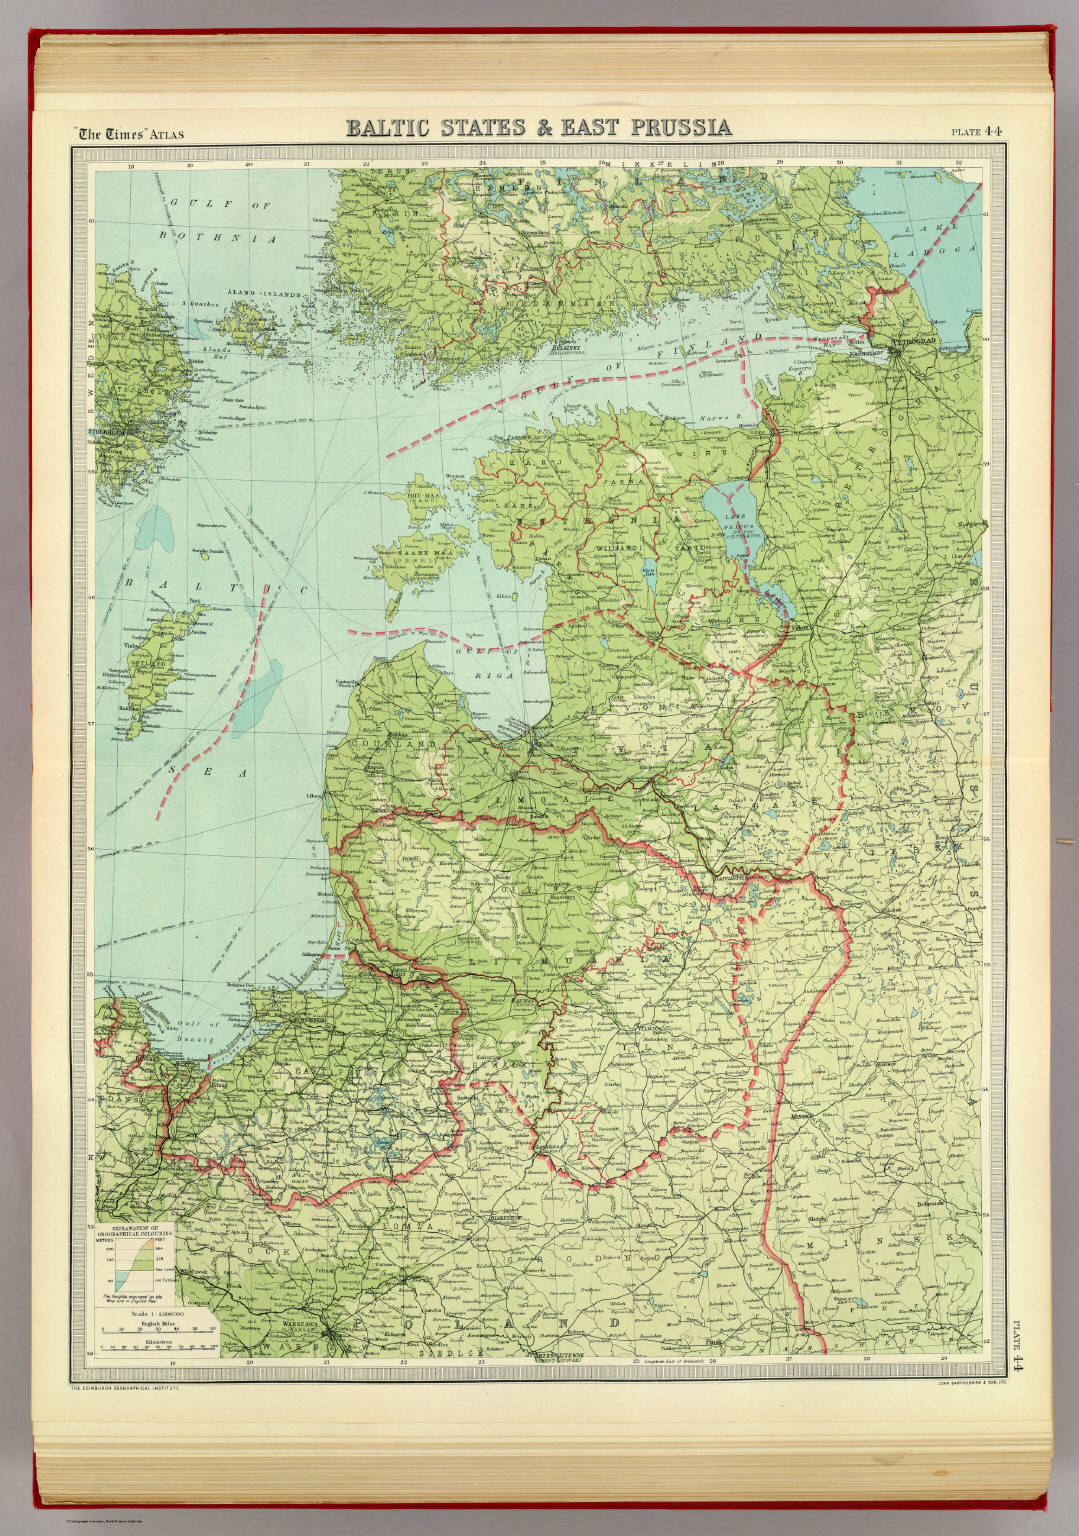 Baltic States & East Prussia. - David Rumsey Historical Map Collection